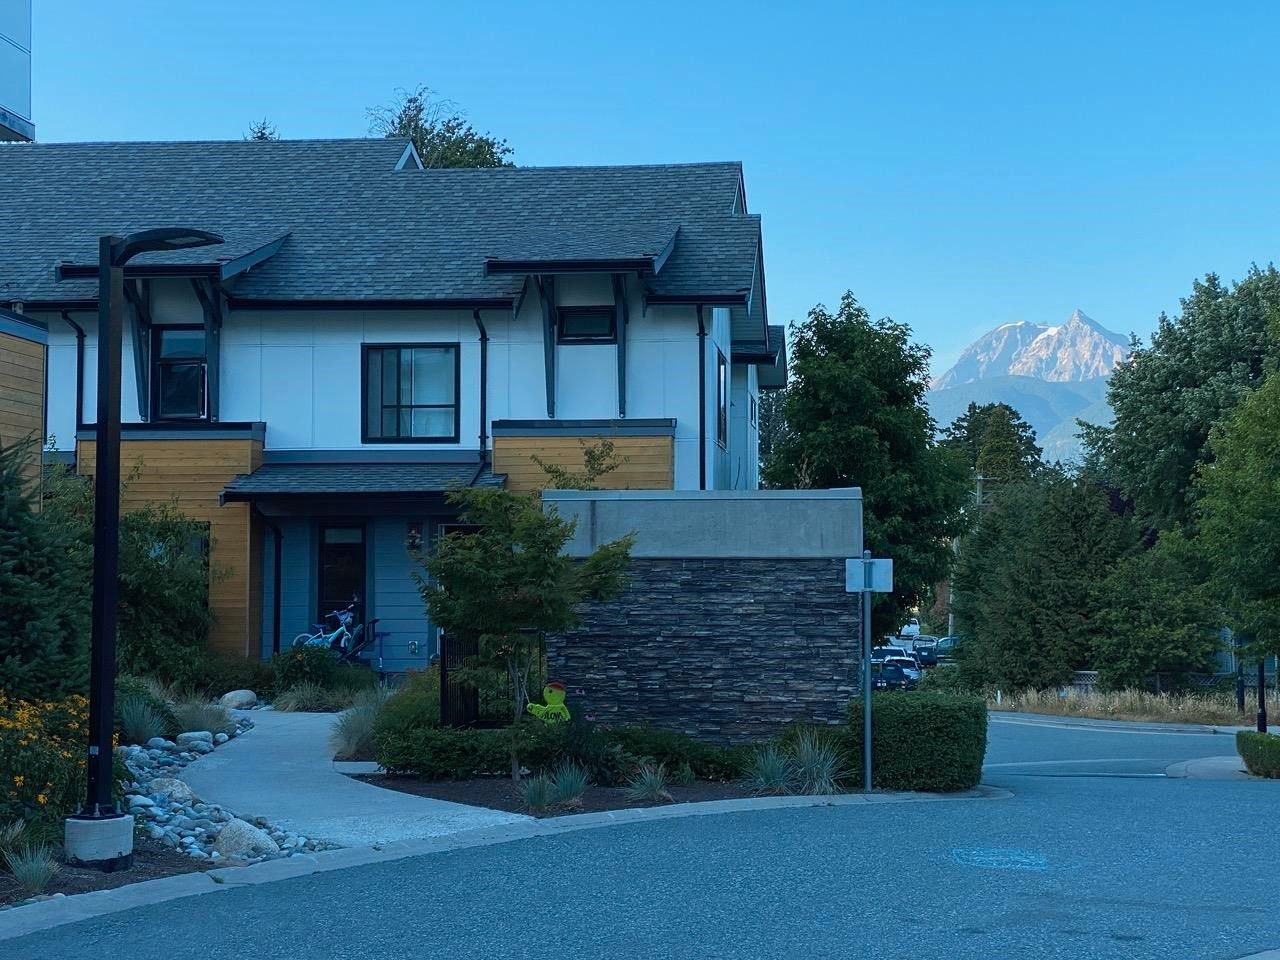 """Main Photo: 36 1188 MAIN Street in Squamish: Downtown SQ Townhouse for sale in """"Soleil"""" : MLS®# R2617496"""